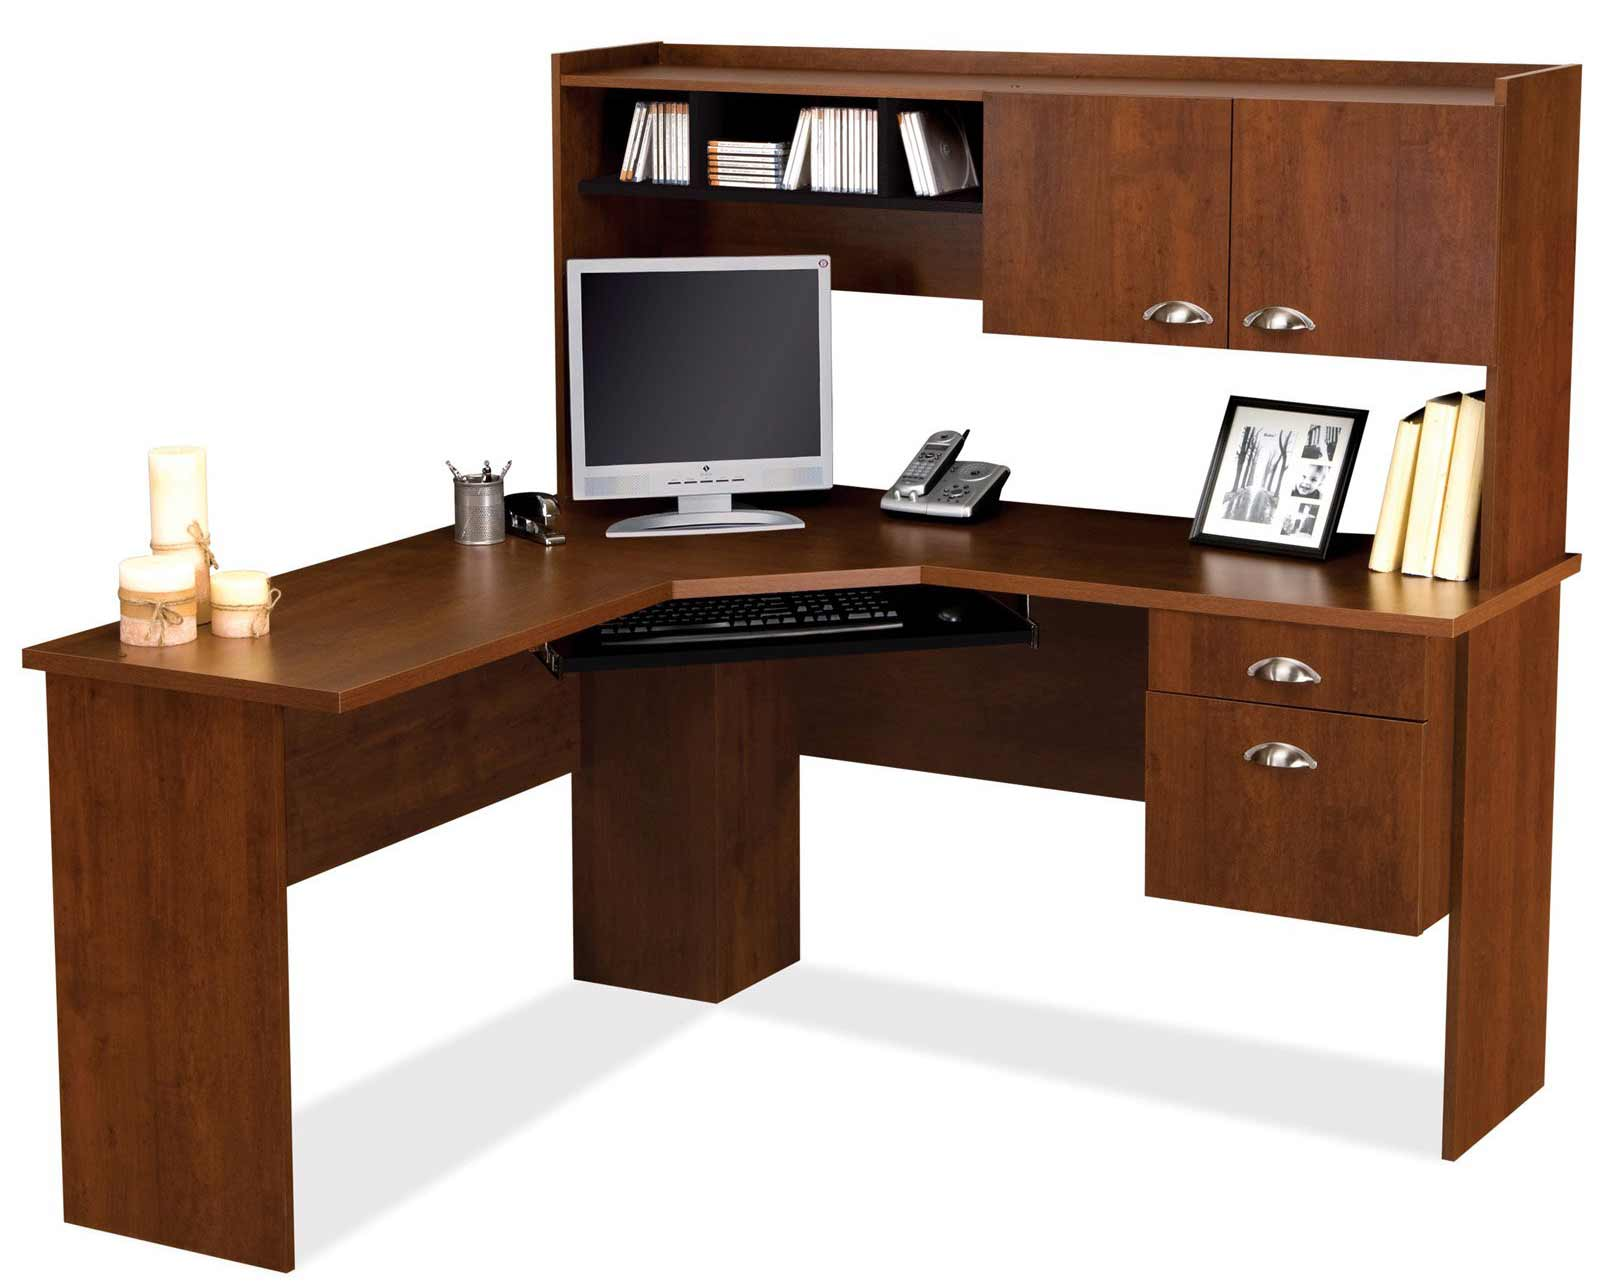 Buying a Computer Desk